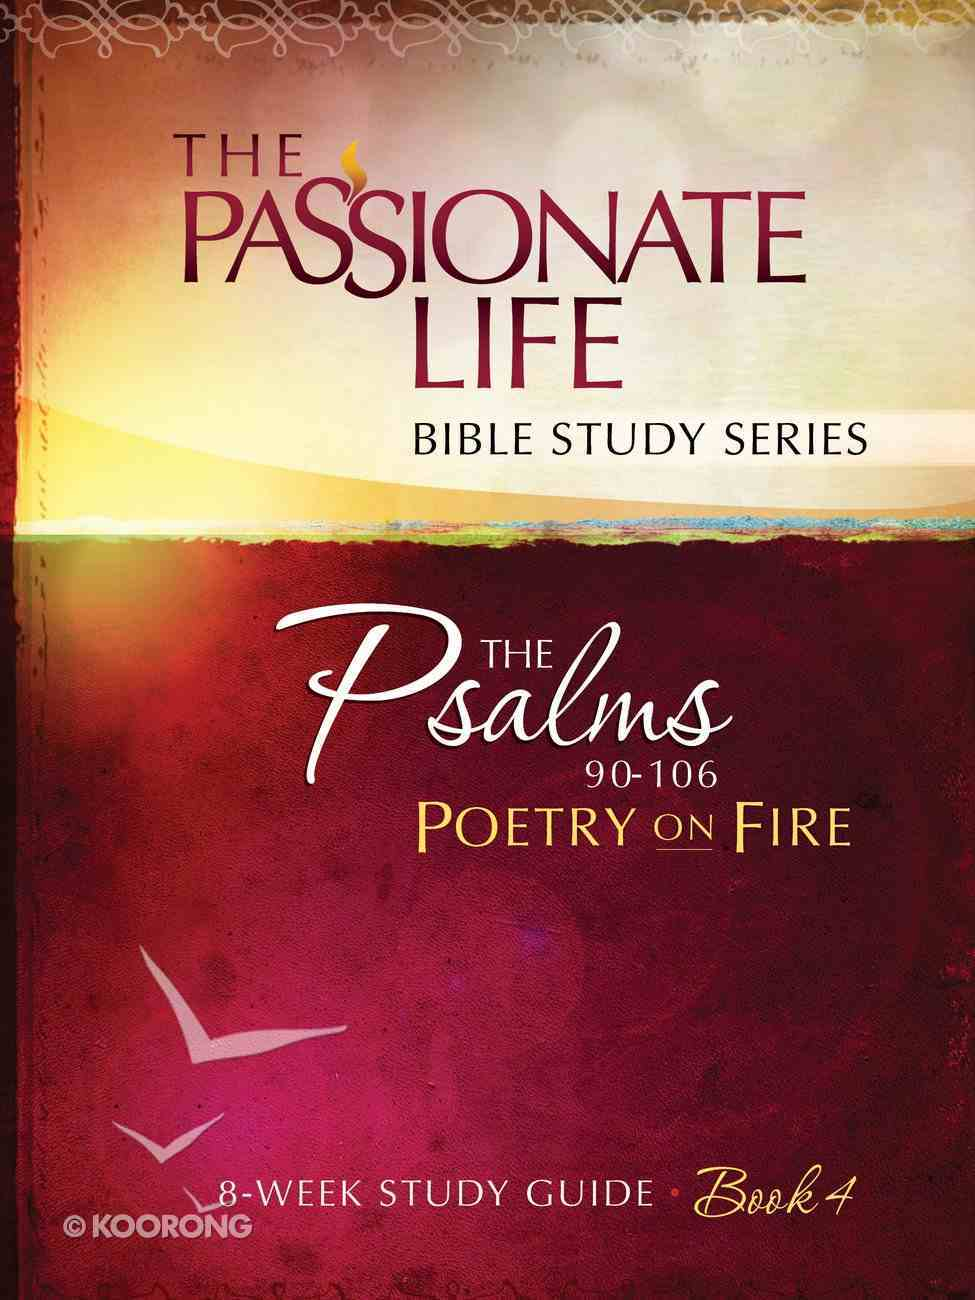 Psalms - Poetry on Fire (The Passionate Life Bible Study Series) Paperback